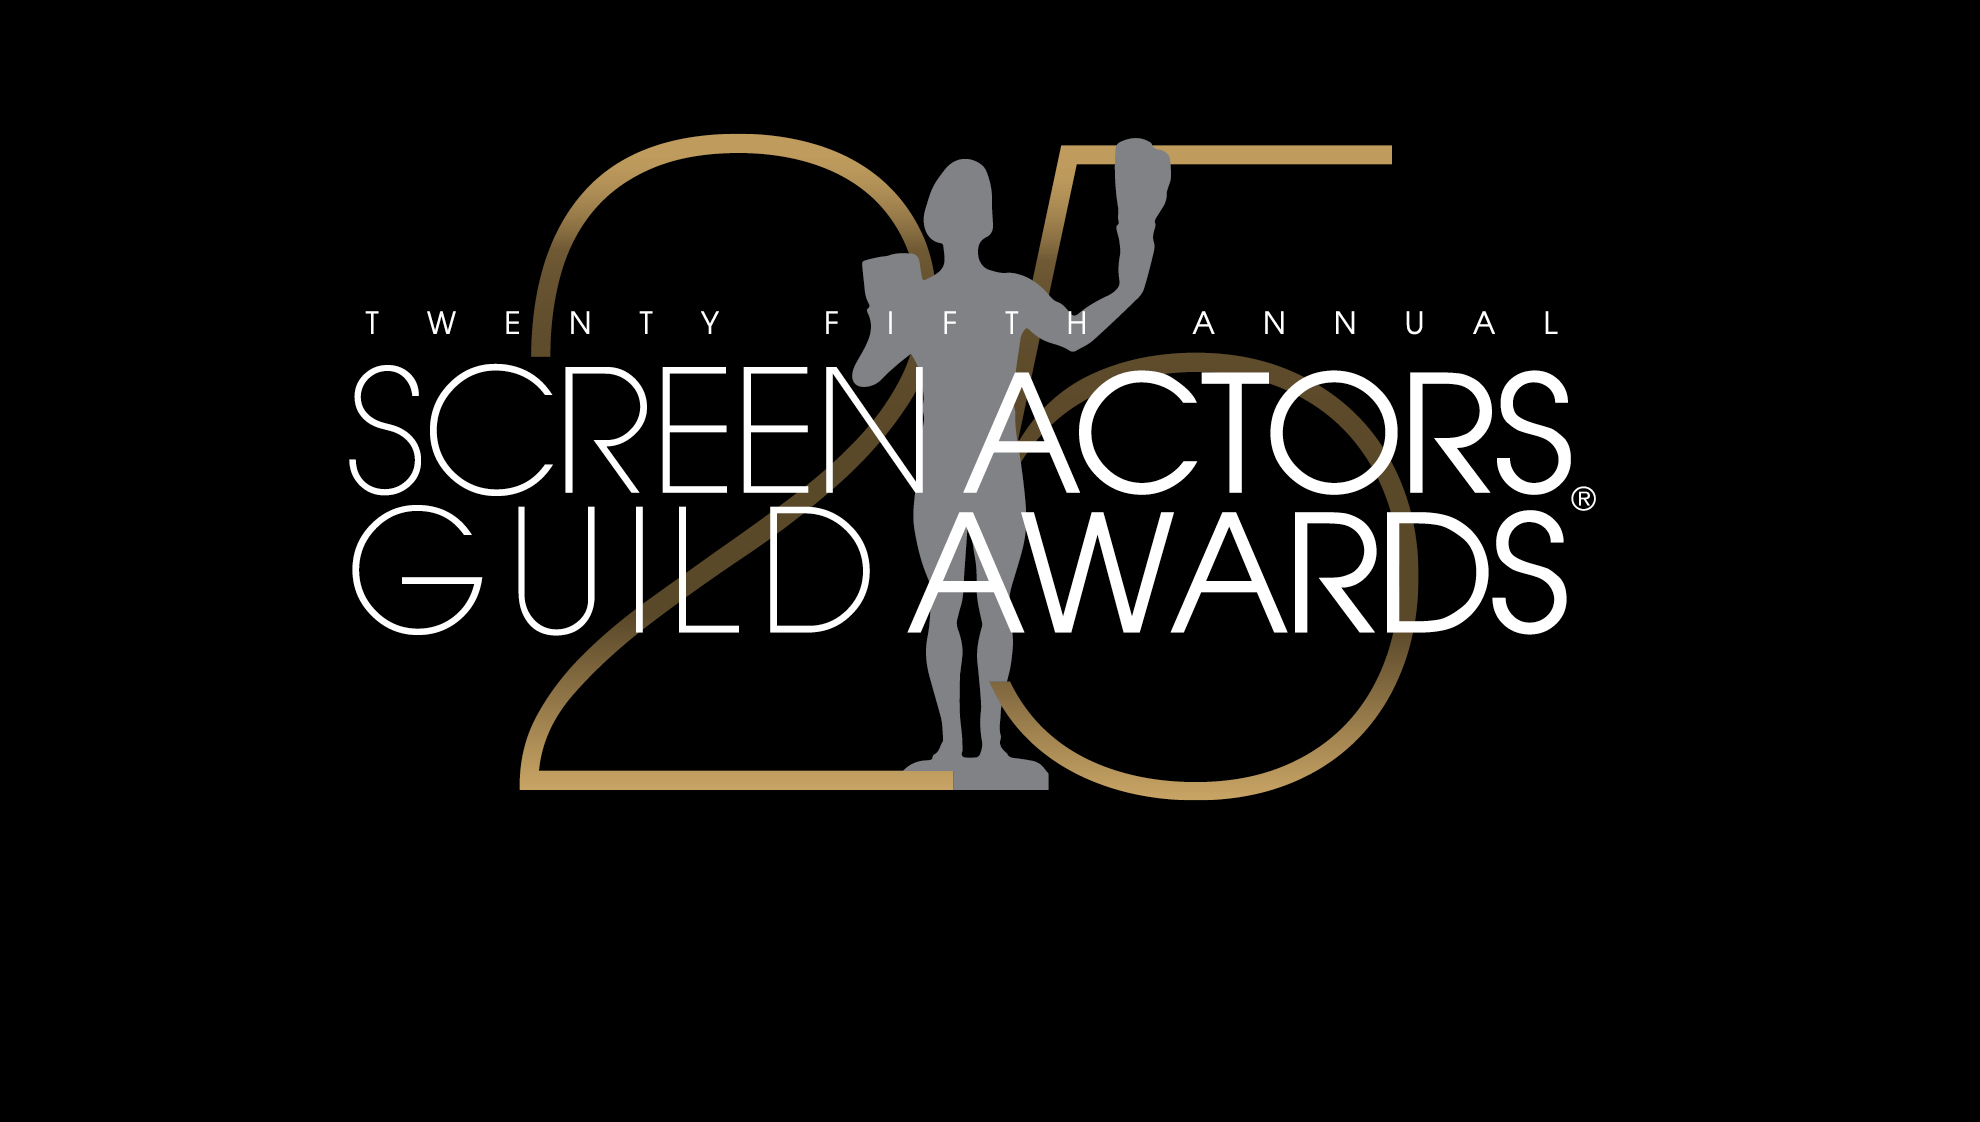 """""""Twenty Fifth Annual Screen Actors Guild Awards"""" text overlaying a gray Actor silhouette, overlaying a gold 25 with a black background"""